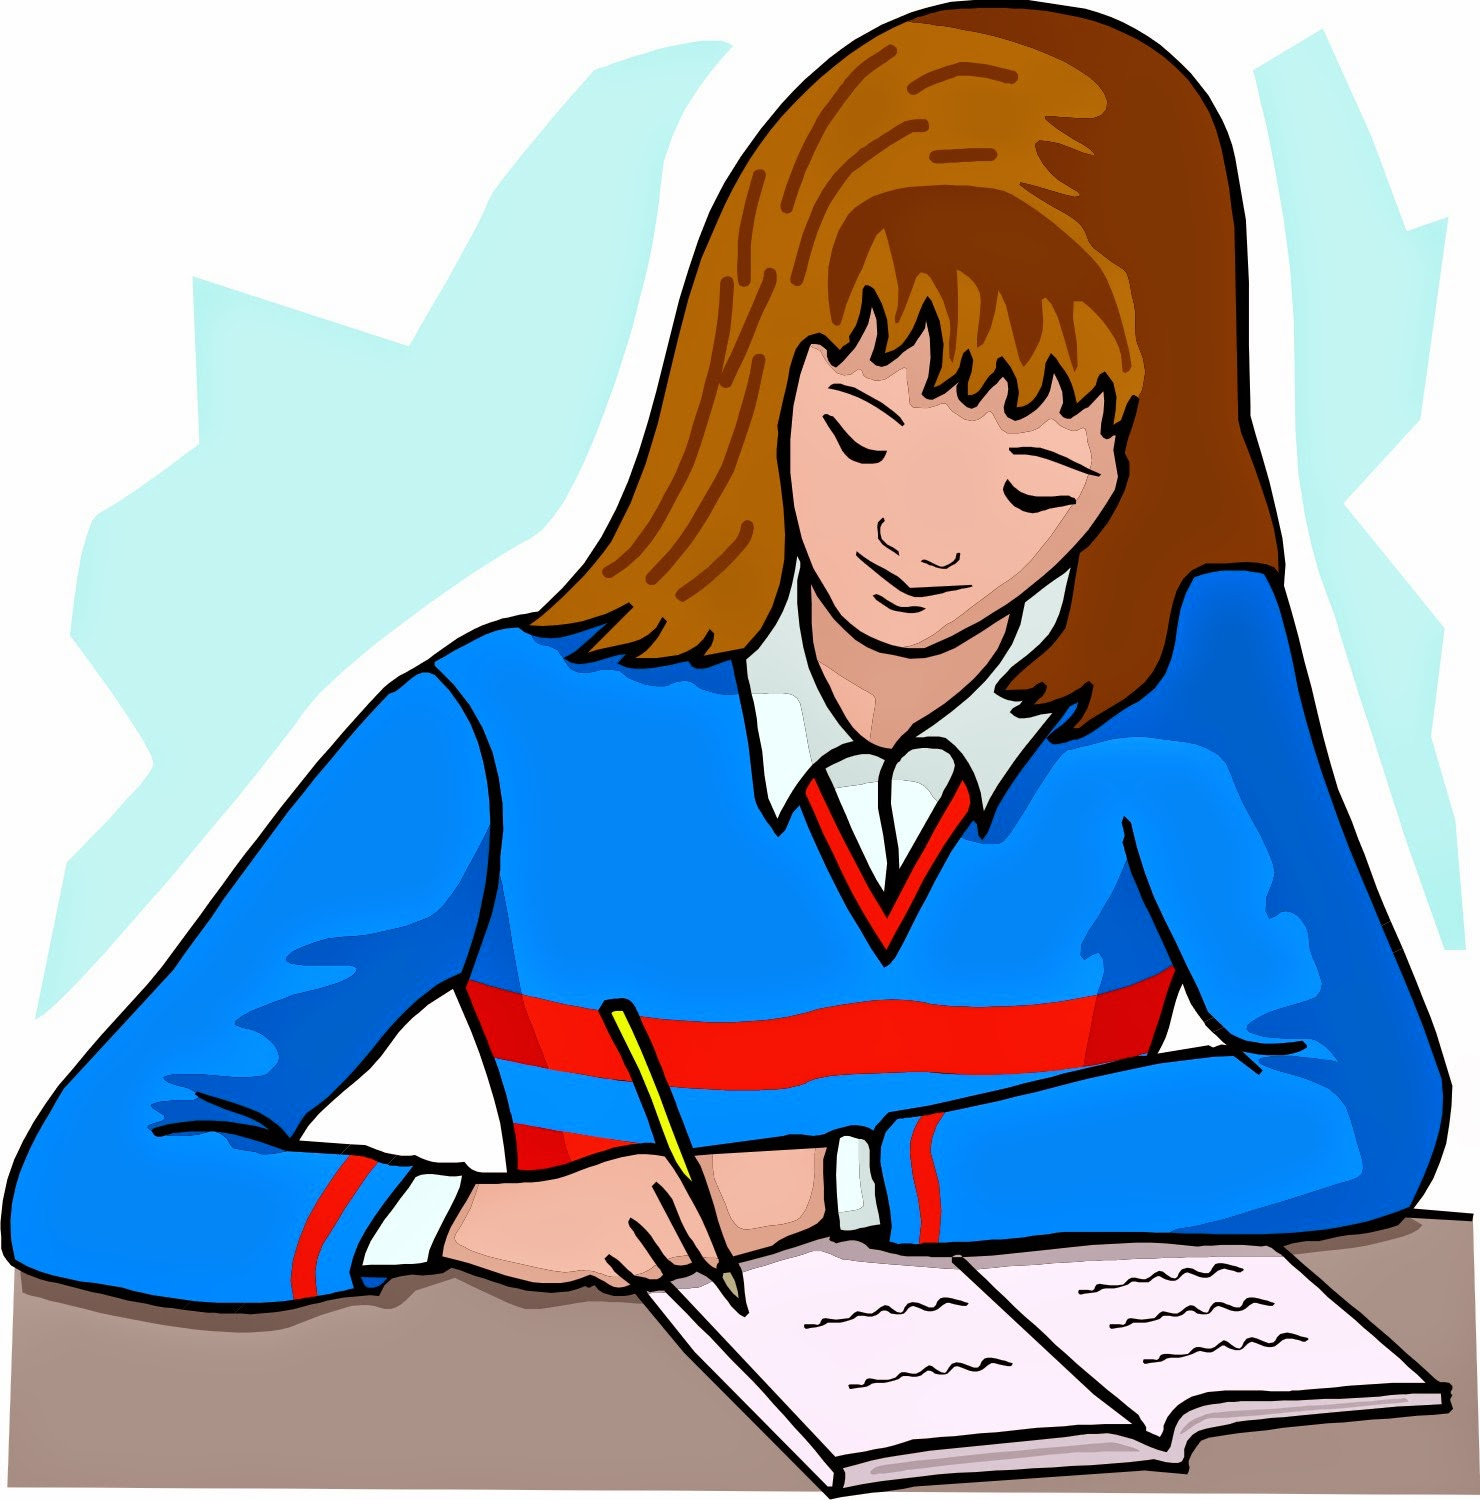 323 Assessment free clipart.